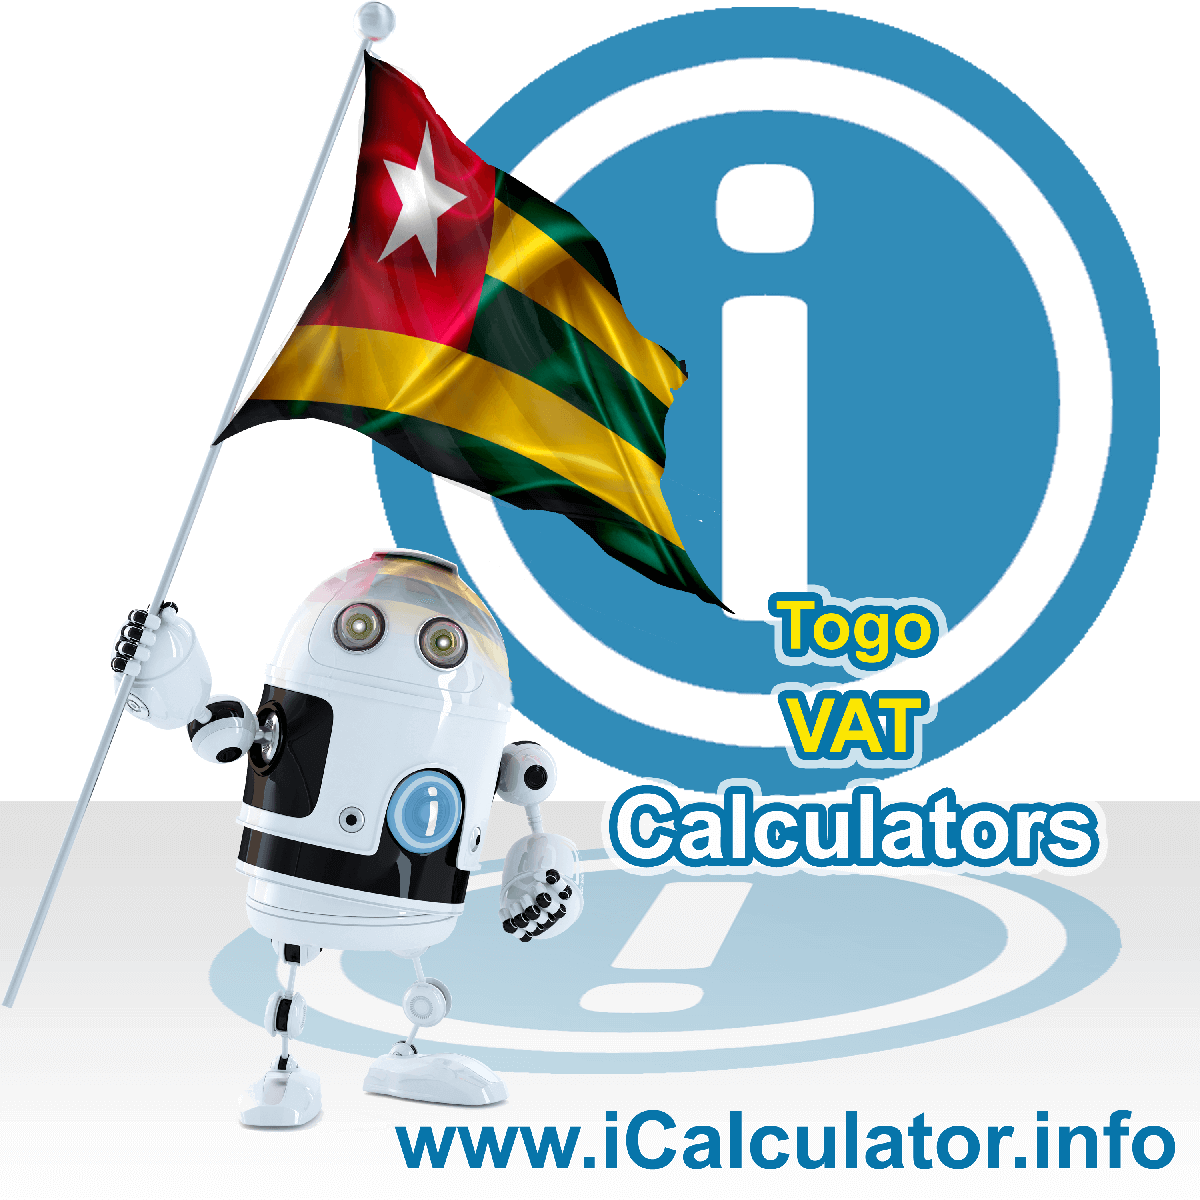 Togo VAT Calculator. This image shows the Togo flag and information relating to the VAT formula used for calculating Value Added Tax in Togo using the Togo VAT Calculator in 2020